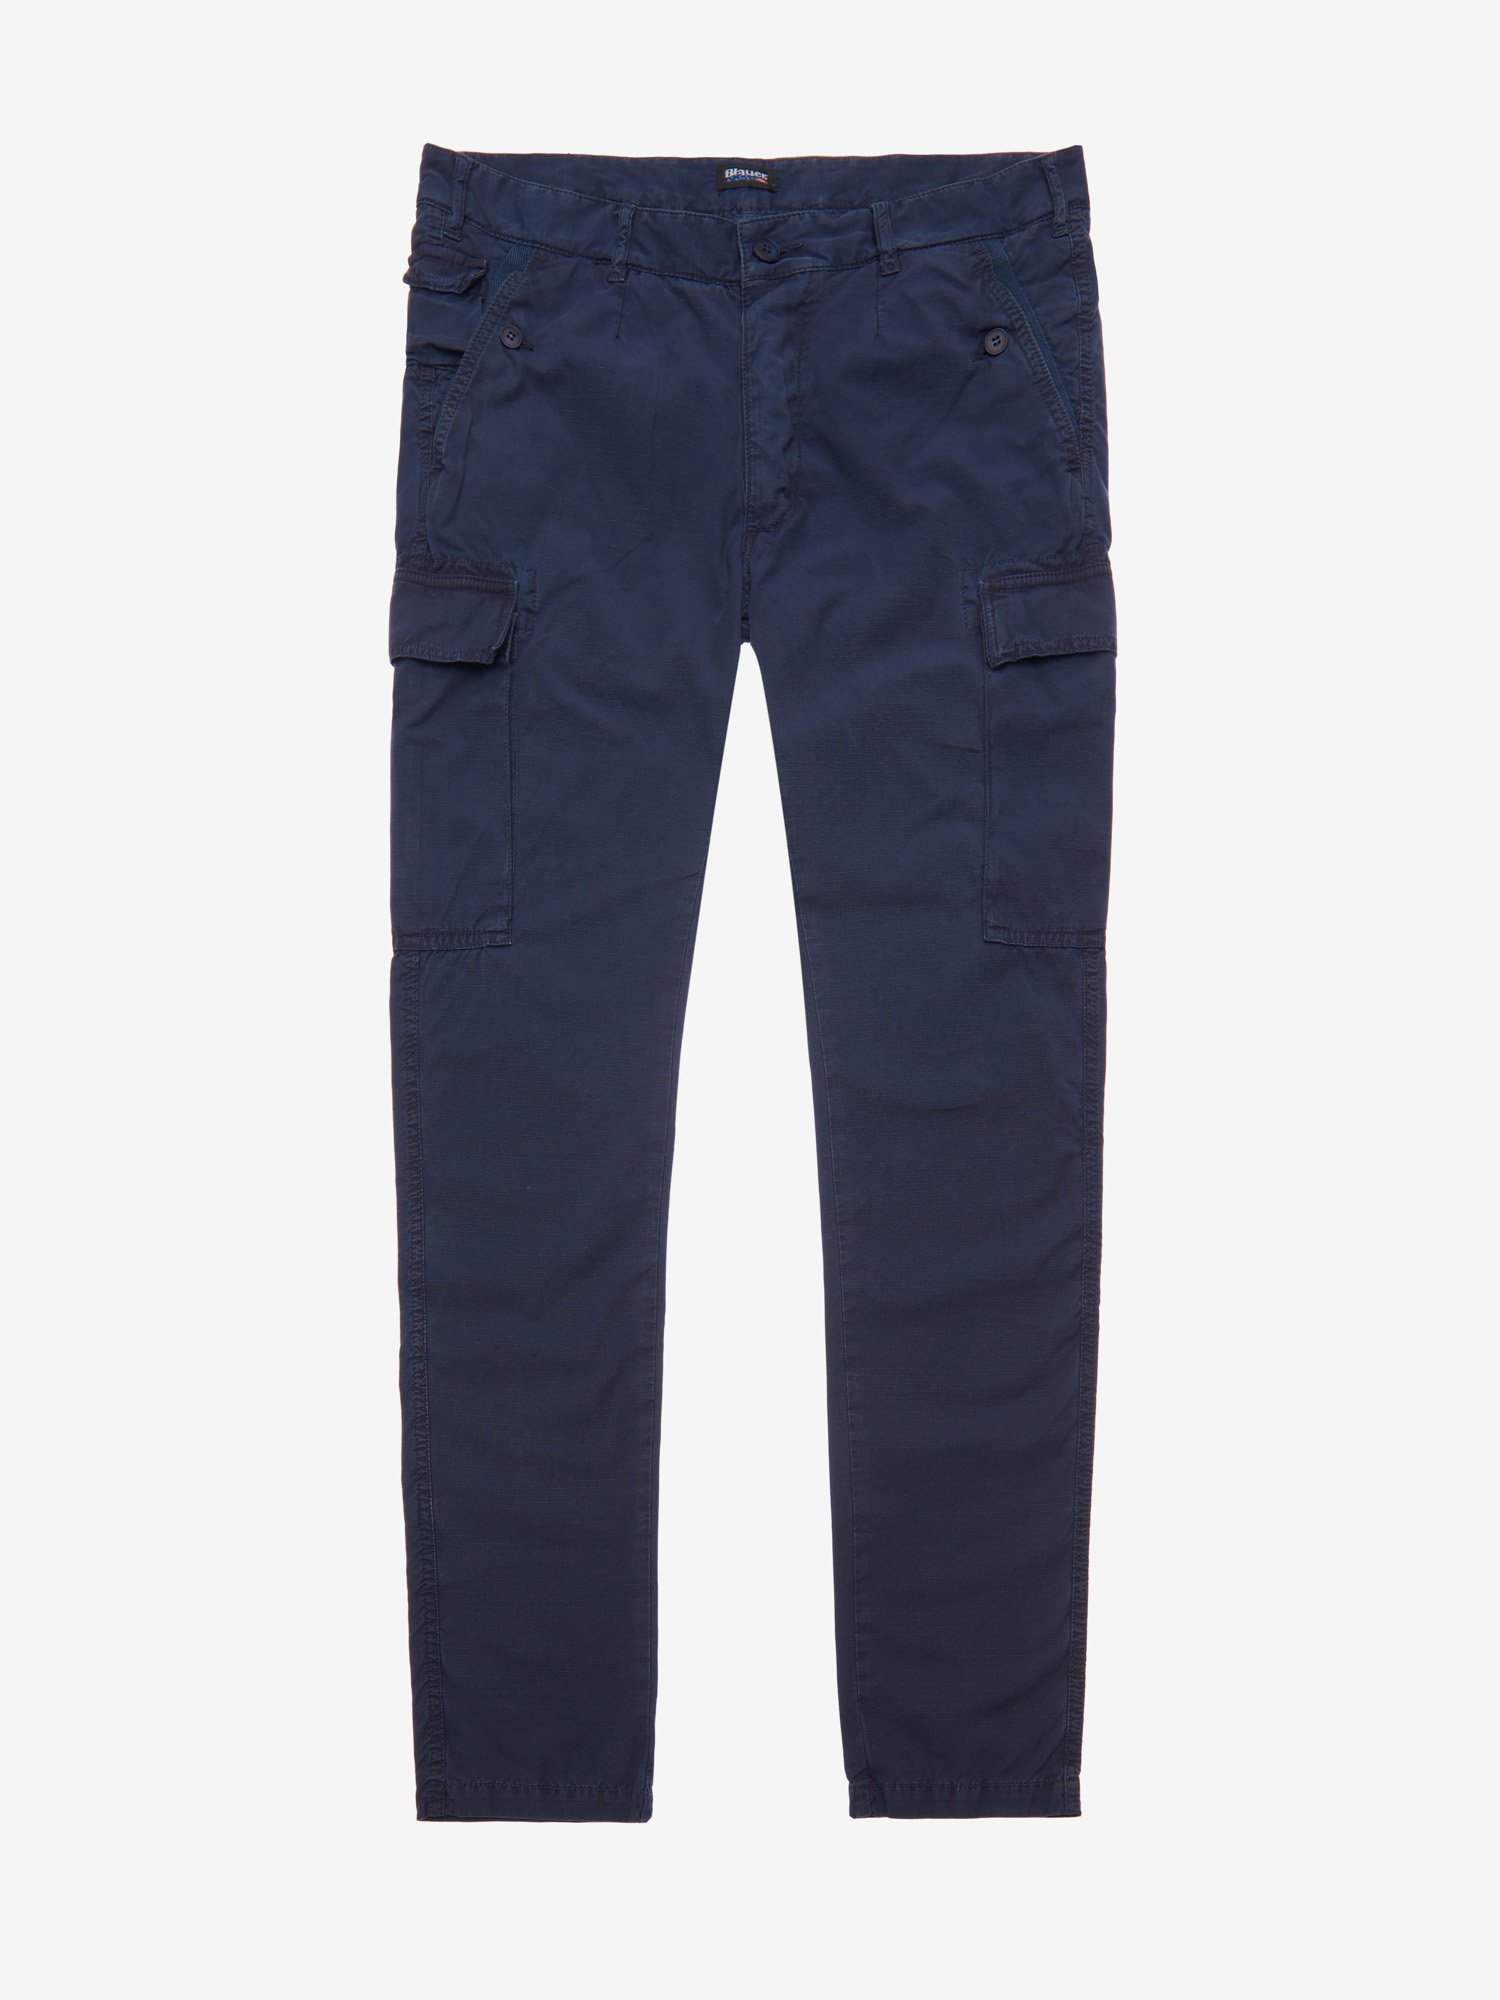 Blauer - COTTON CARGO TROUSERS - Blue Ink - Blauer